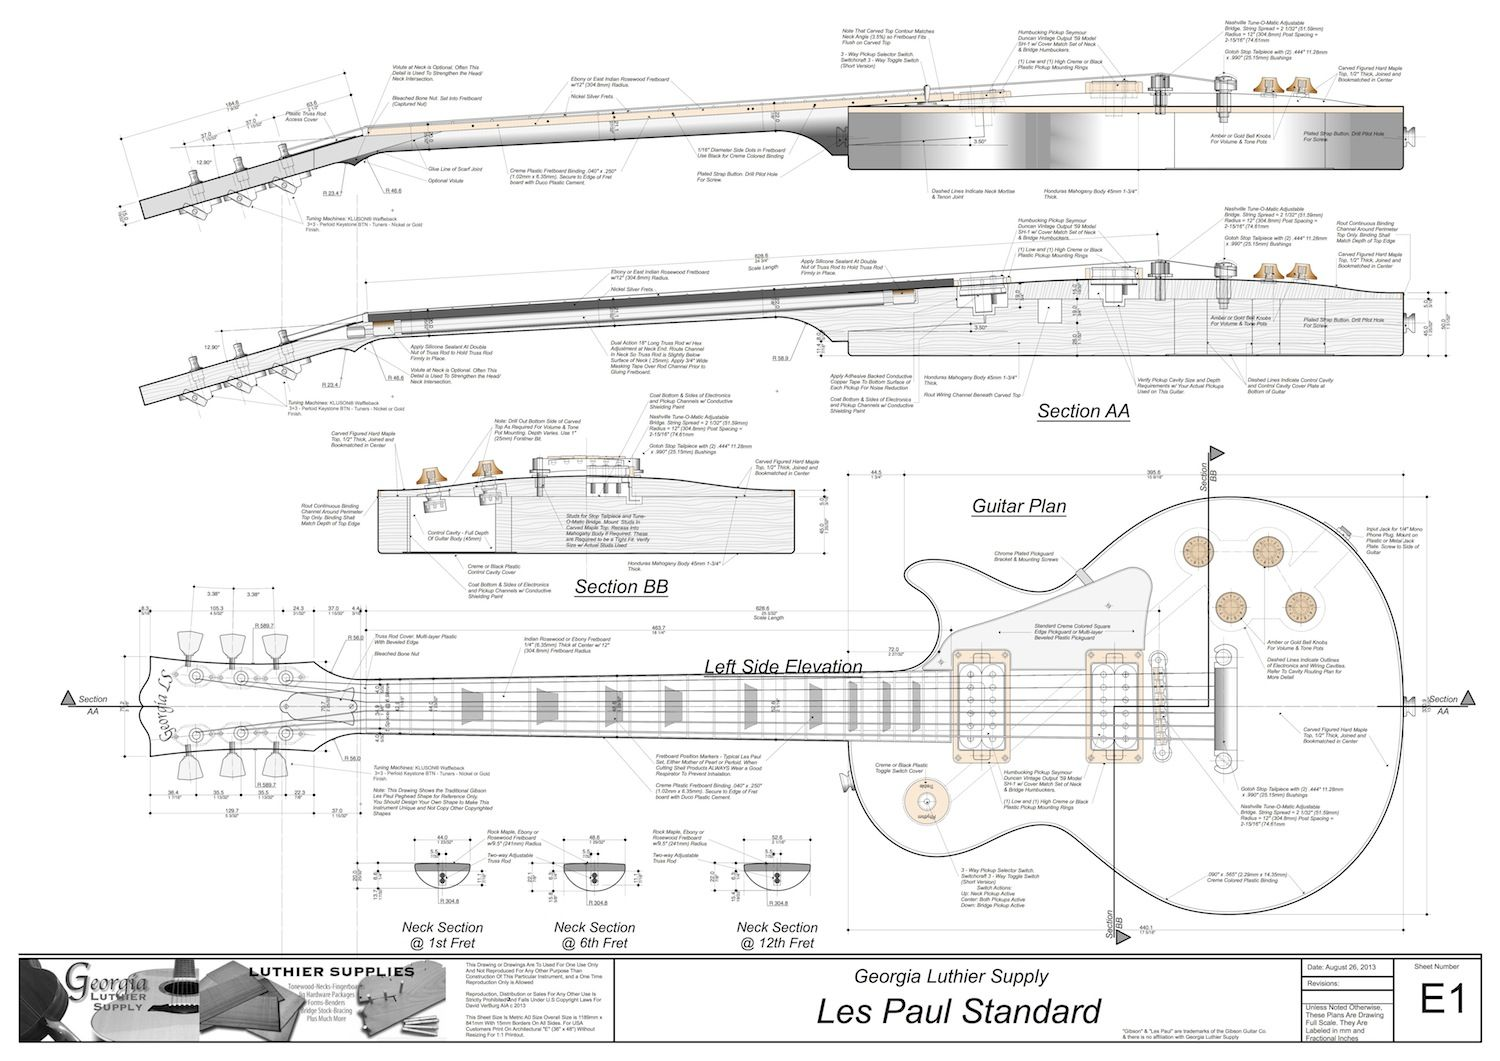 les paul standard wiring diagram cat 3 safety body dimensions Идеи для дома pinterest